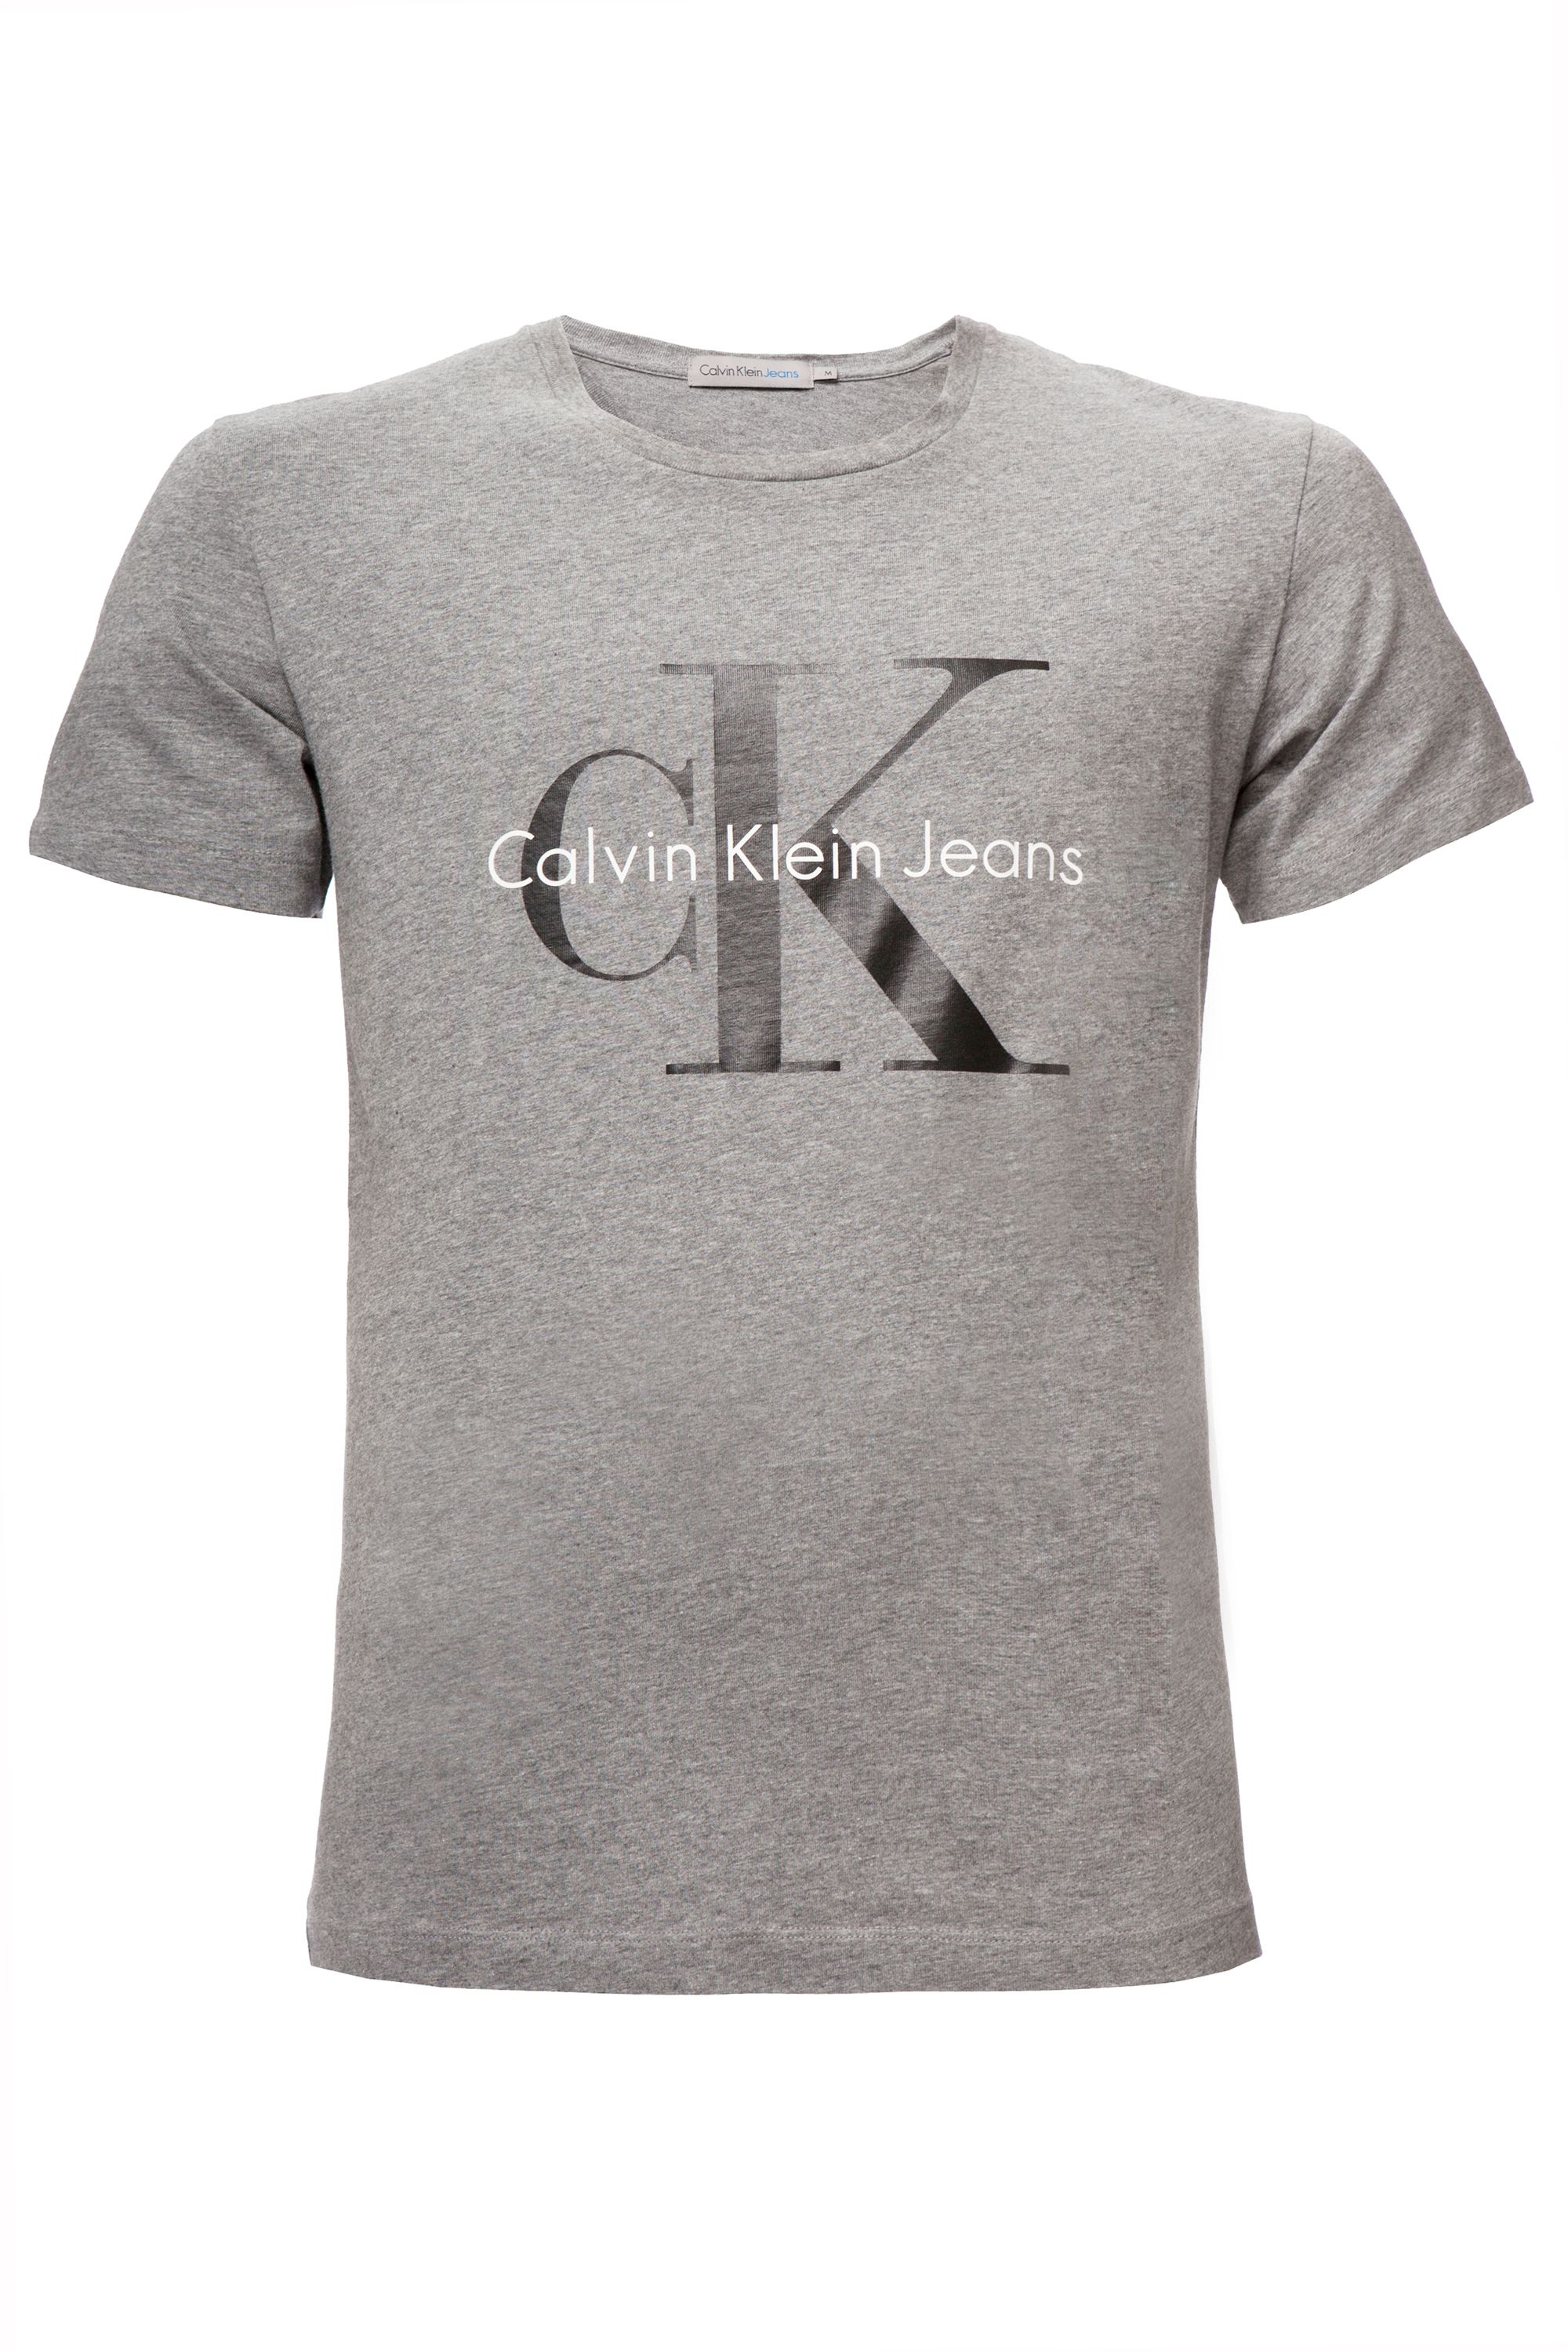 Men's Calvin Klein Tee true icon cn s/s t-shirt, Grey